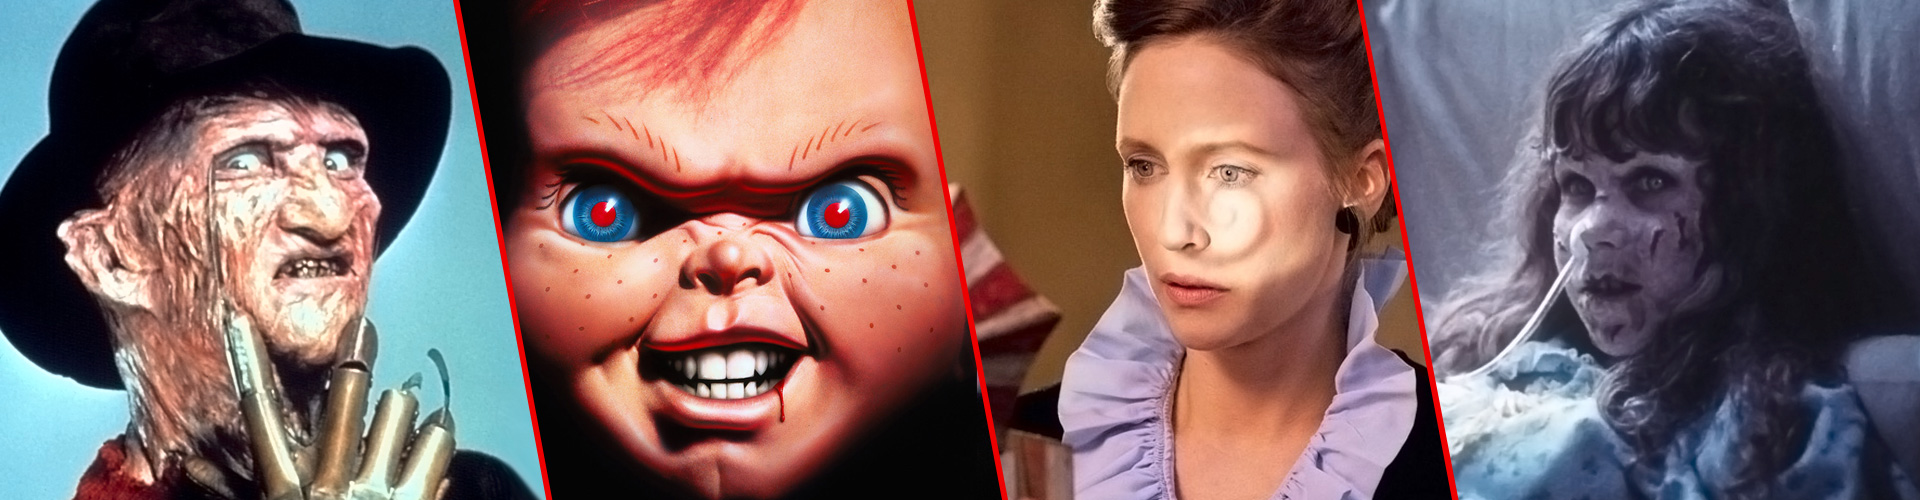 7 horror movies you won't believe are based on actual events